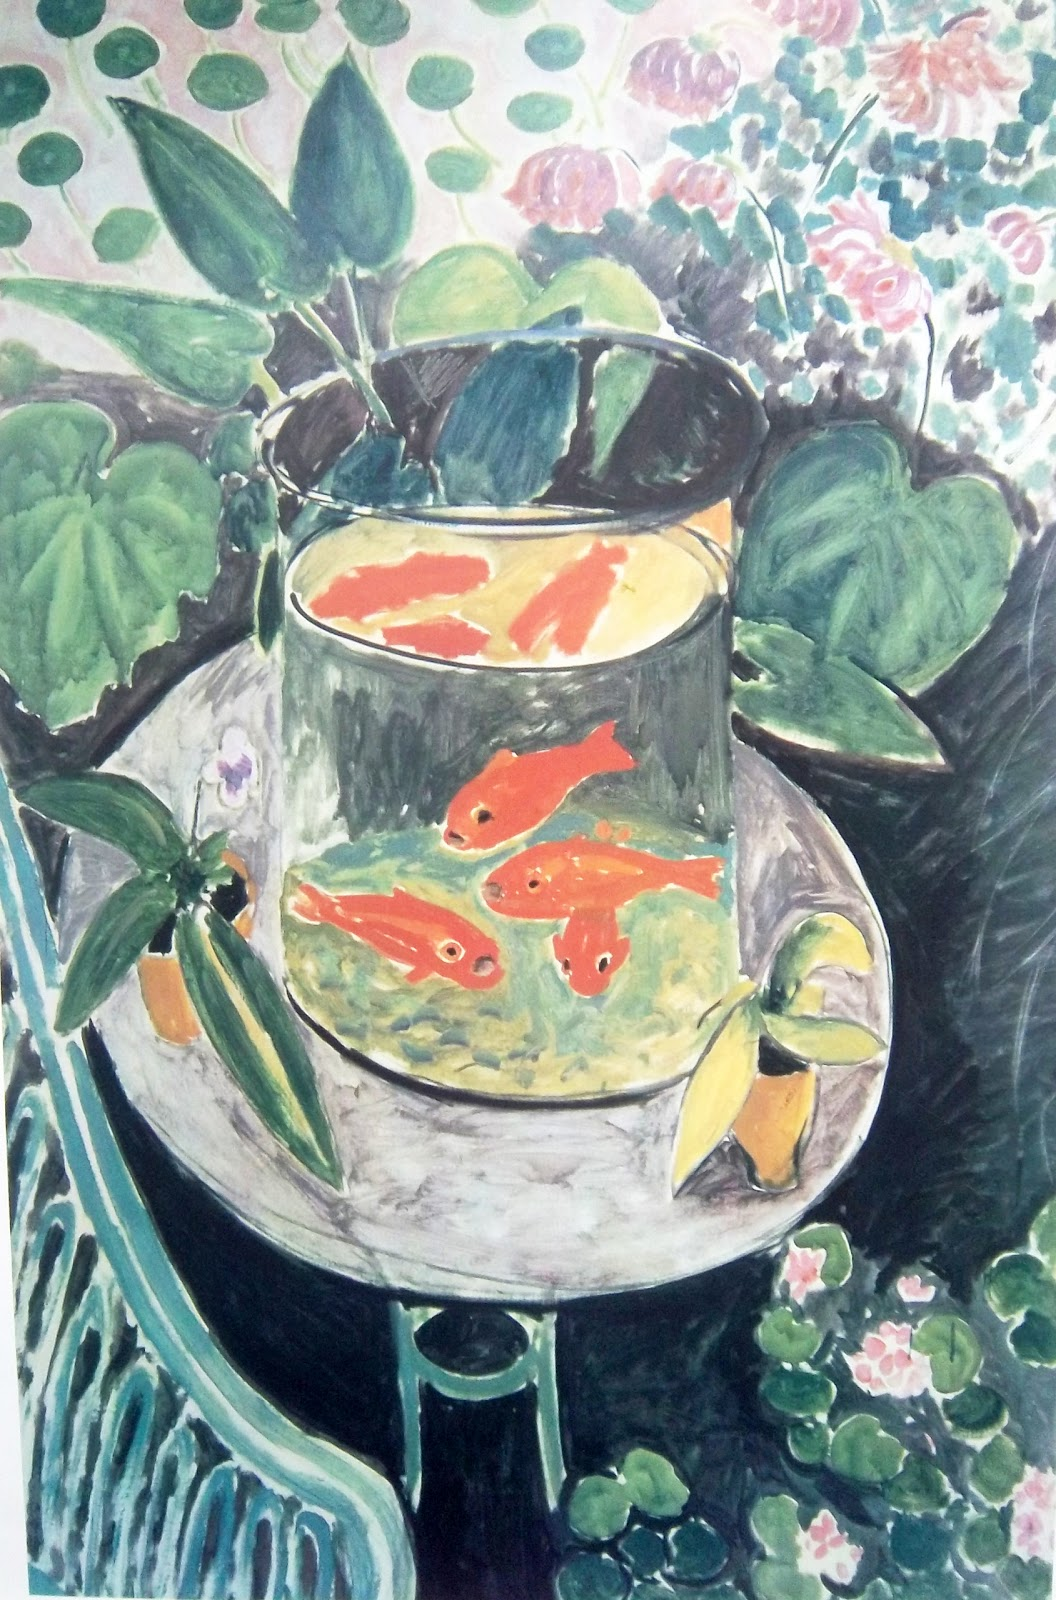 henri matisse goldfish The goldfish oil painting by henri matisse, the highest quality oil painting reproductions and great customer service.